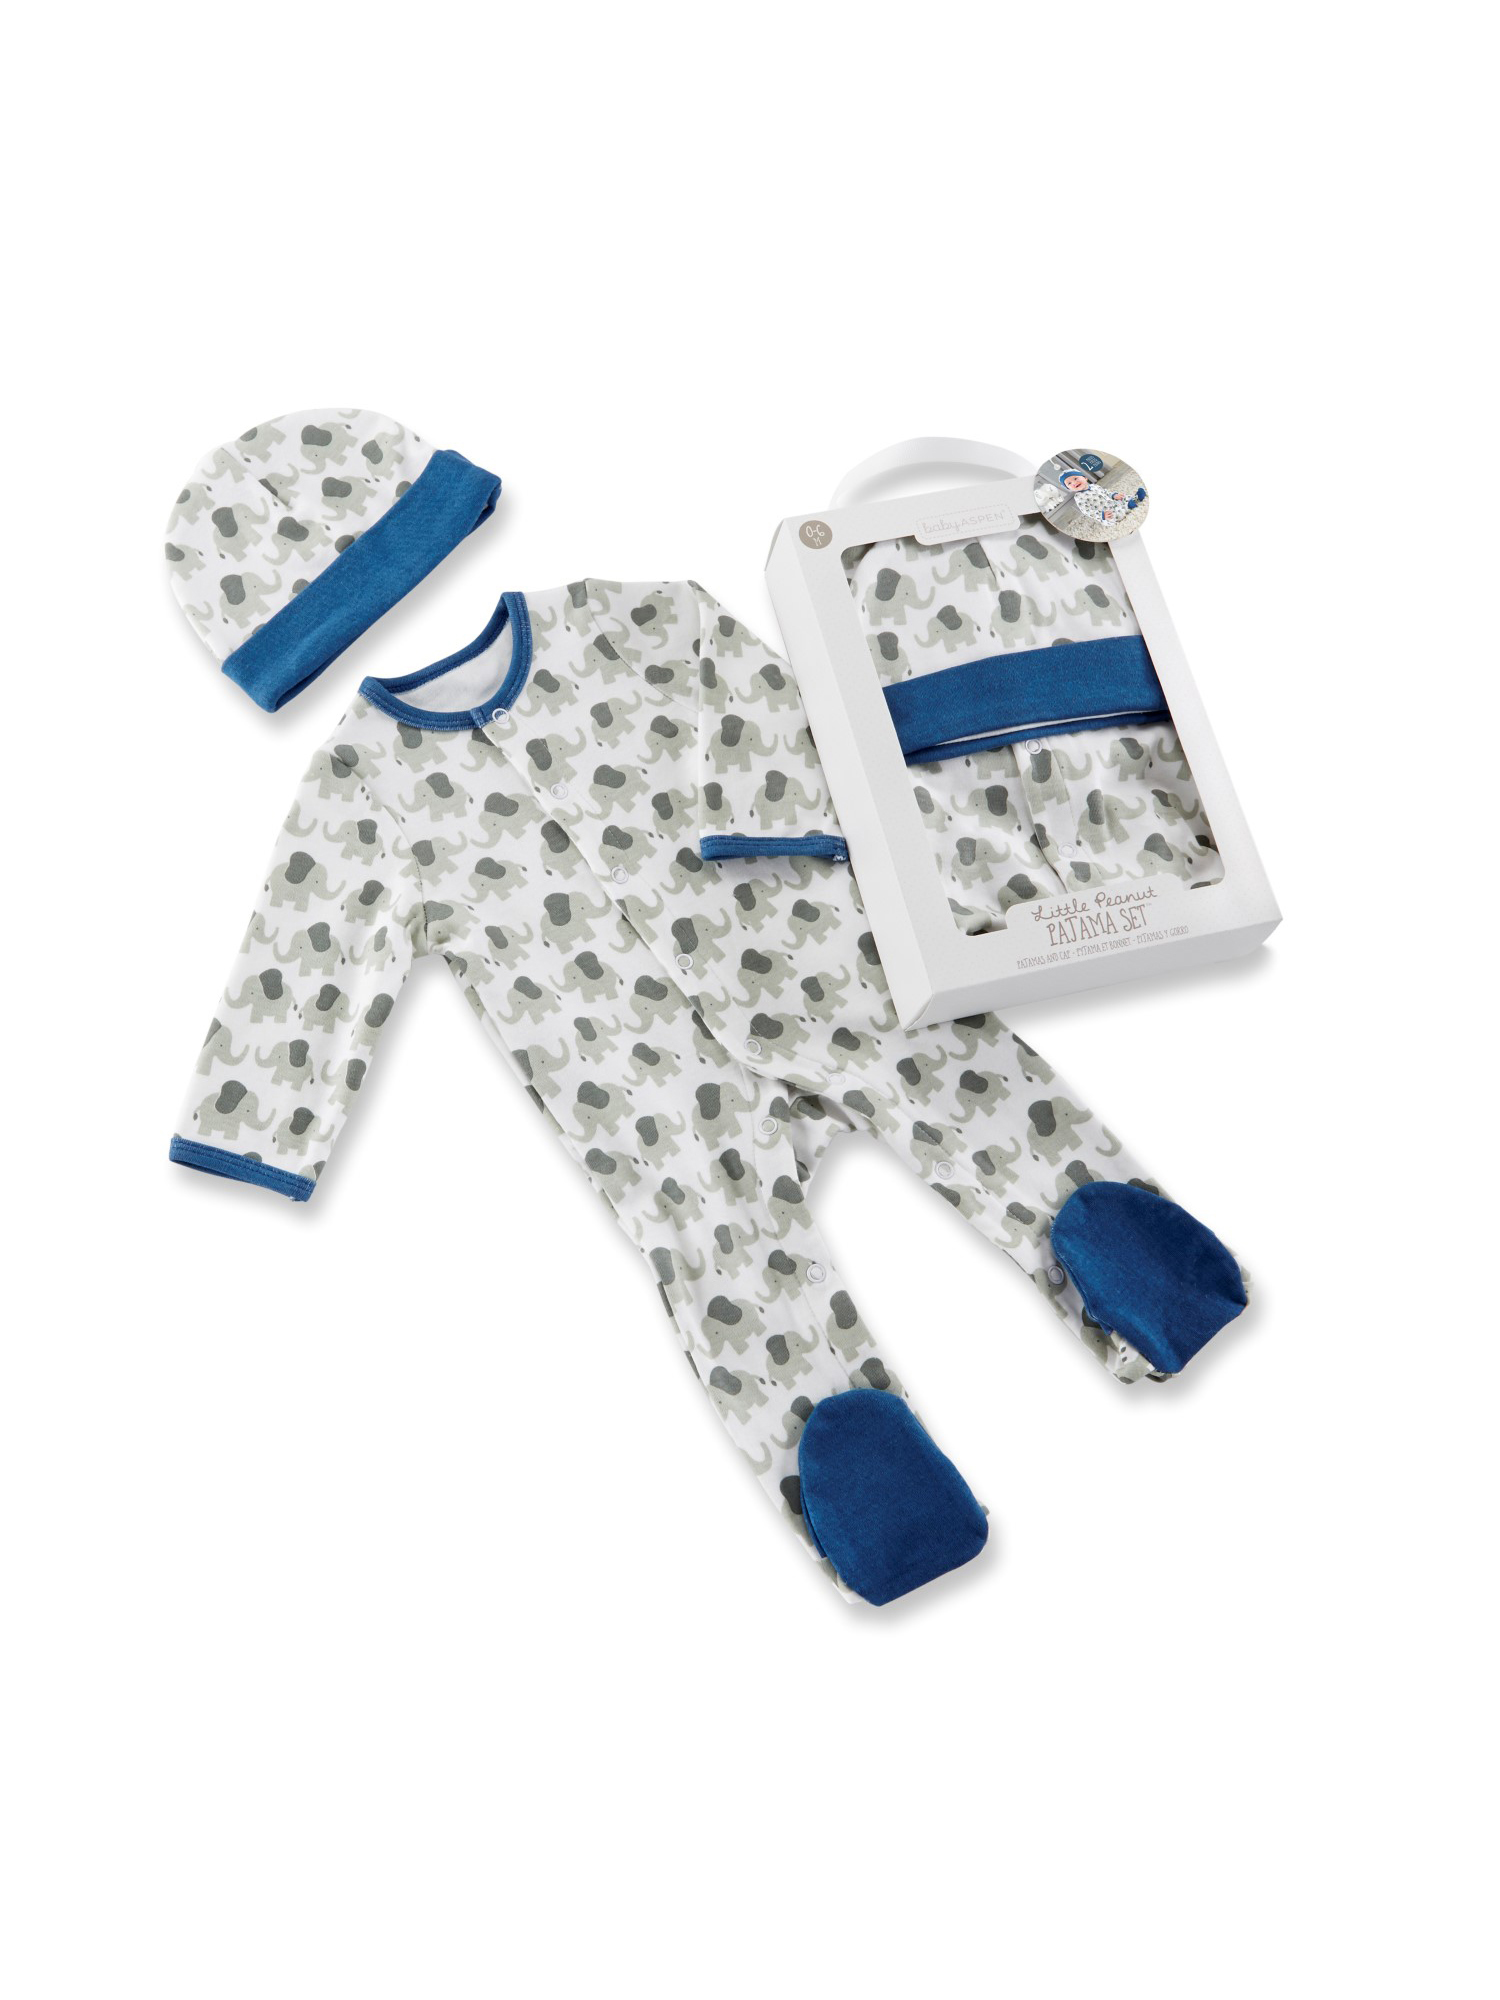 Baby Aspen Little Peanut Elephant Sleep 'N Play Pajamas & Cap, 2pc Gift Box Set (Baby Boys) 0-6mo.